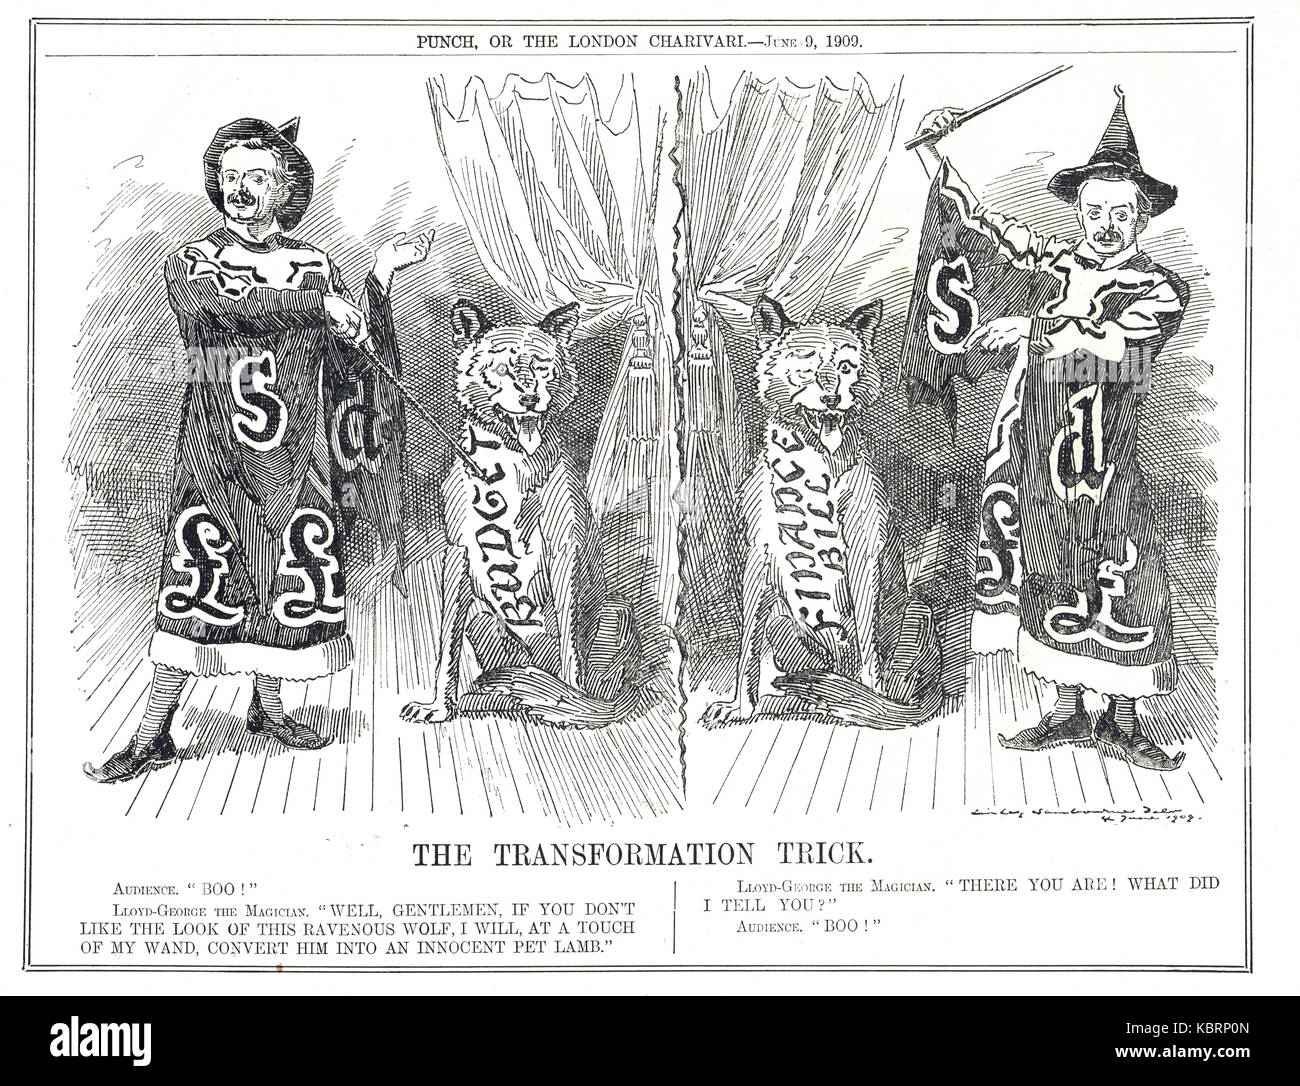 Lloyd George budget transformation trick, the People's budget, 1909-10 - Stock Image